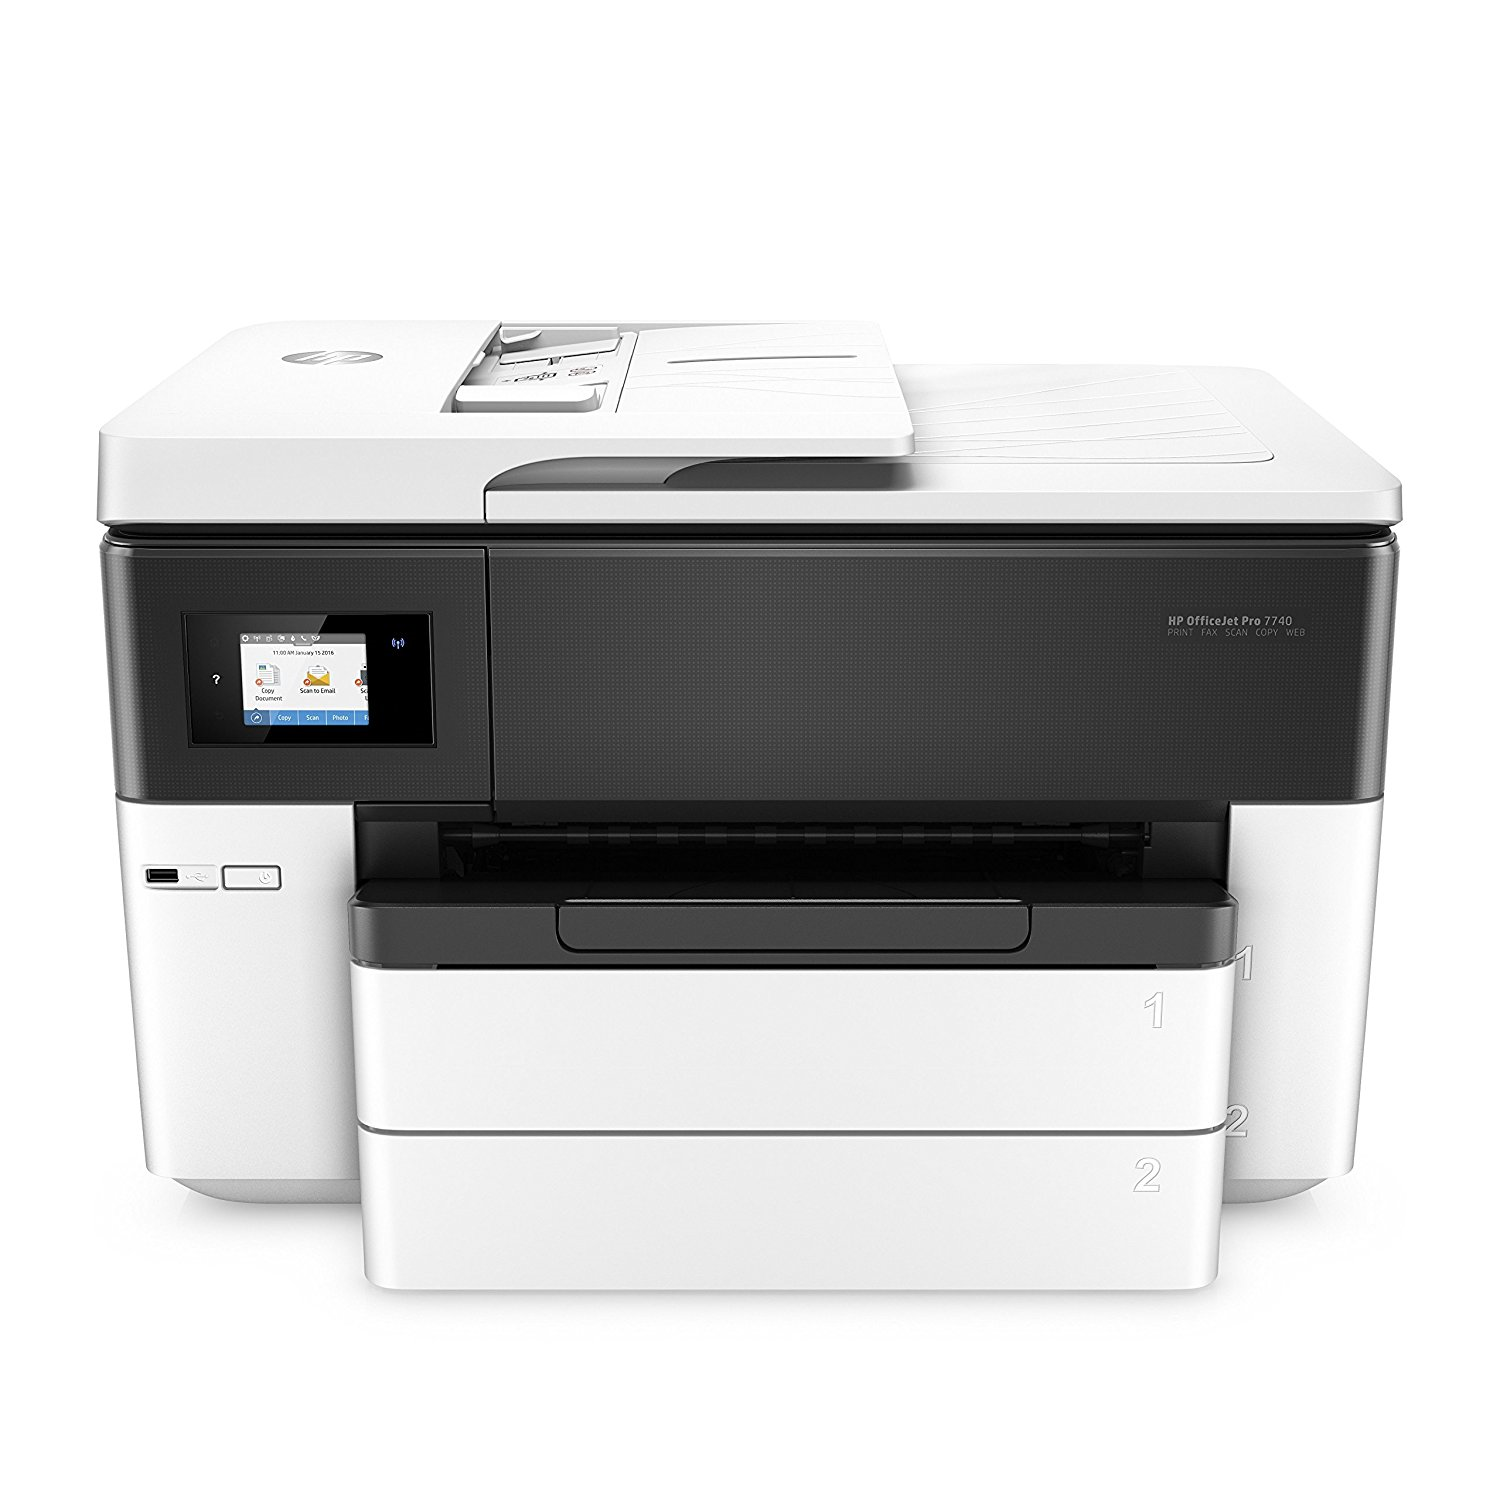 HP Officejet 7740 A3 eAiO One Wide Format printeris